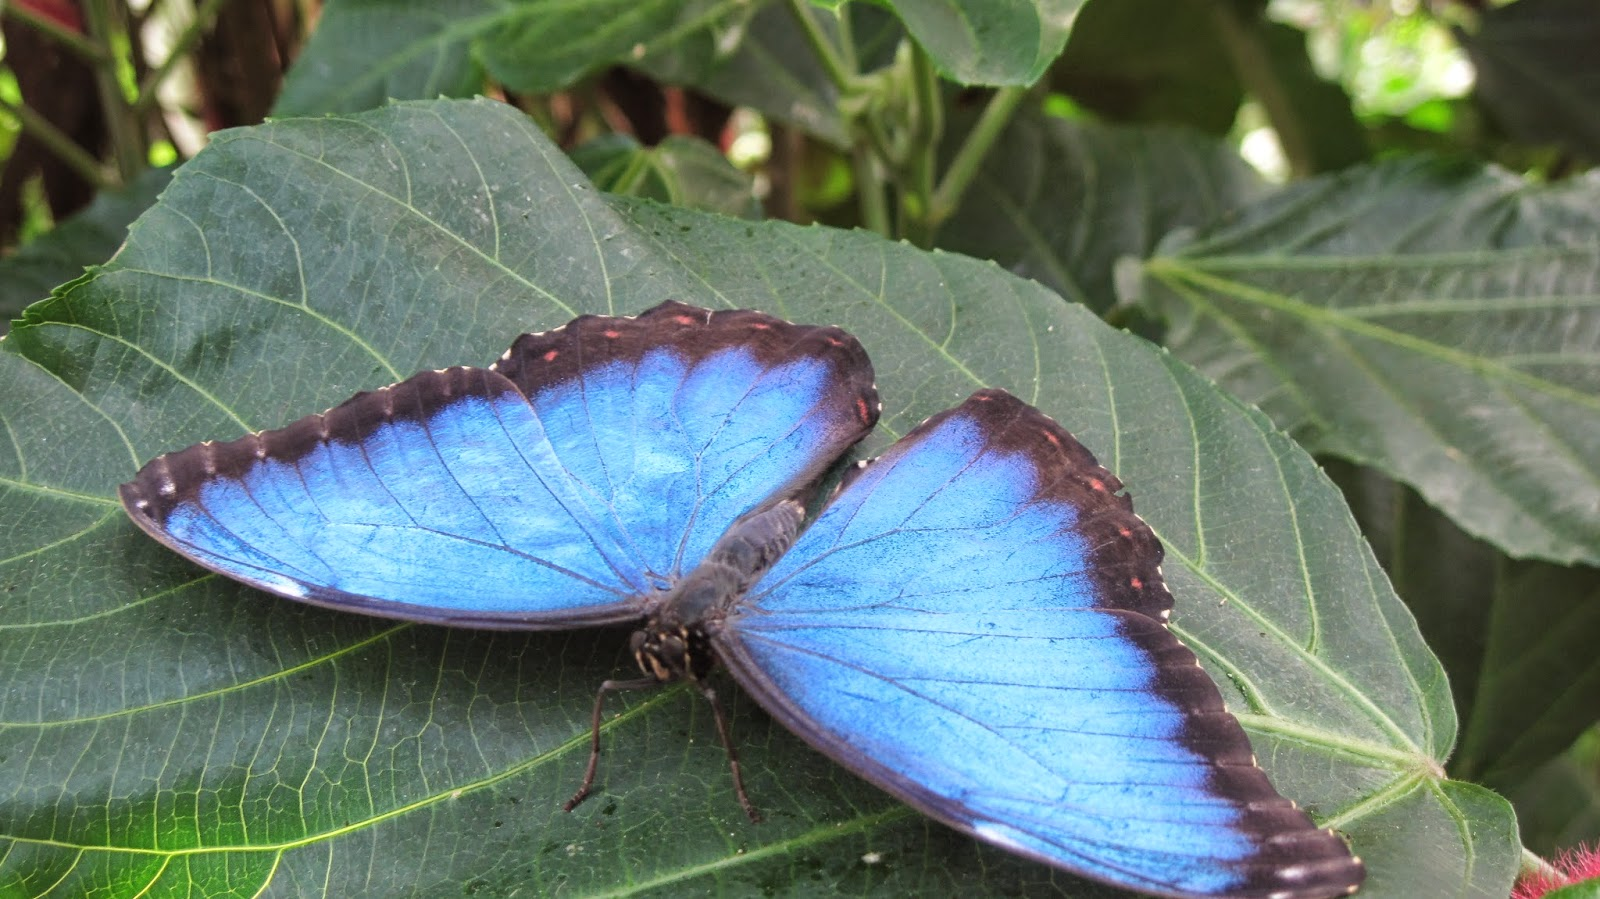 Floral boom september 2014 the upperside of wings are metallic blue the underside is brown with a line of large ocelli eyespot at the base of the postdiscal wing area area buycottarizona